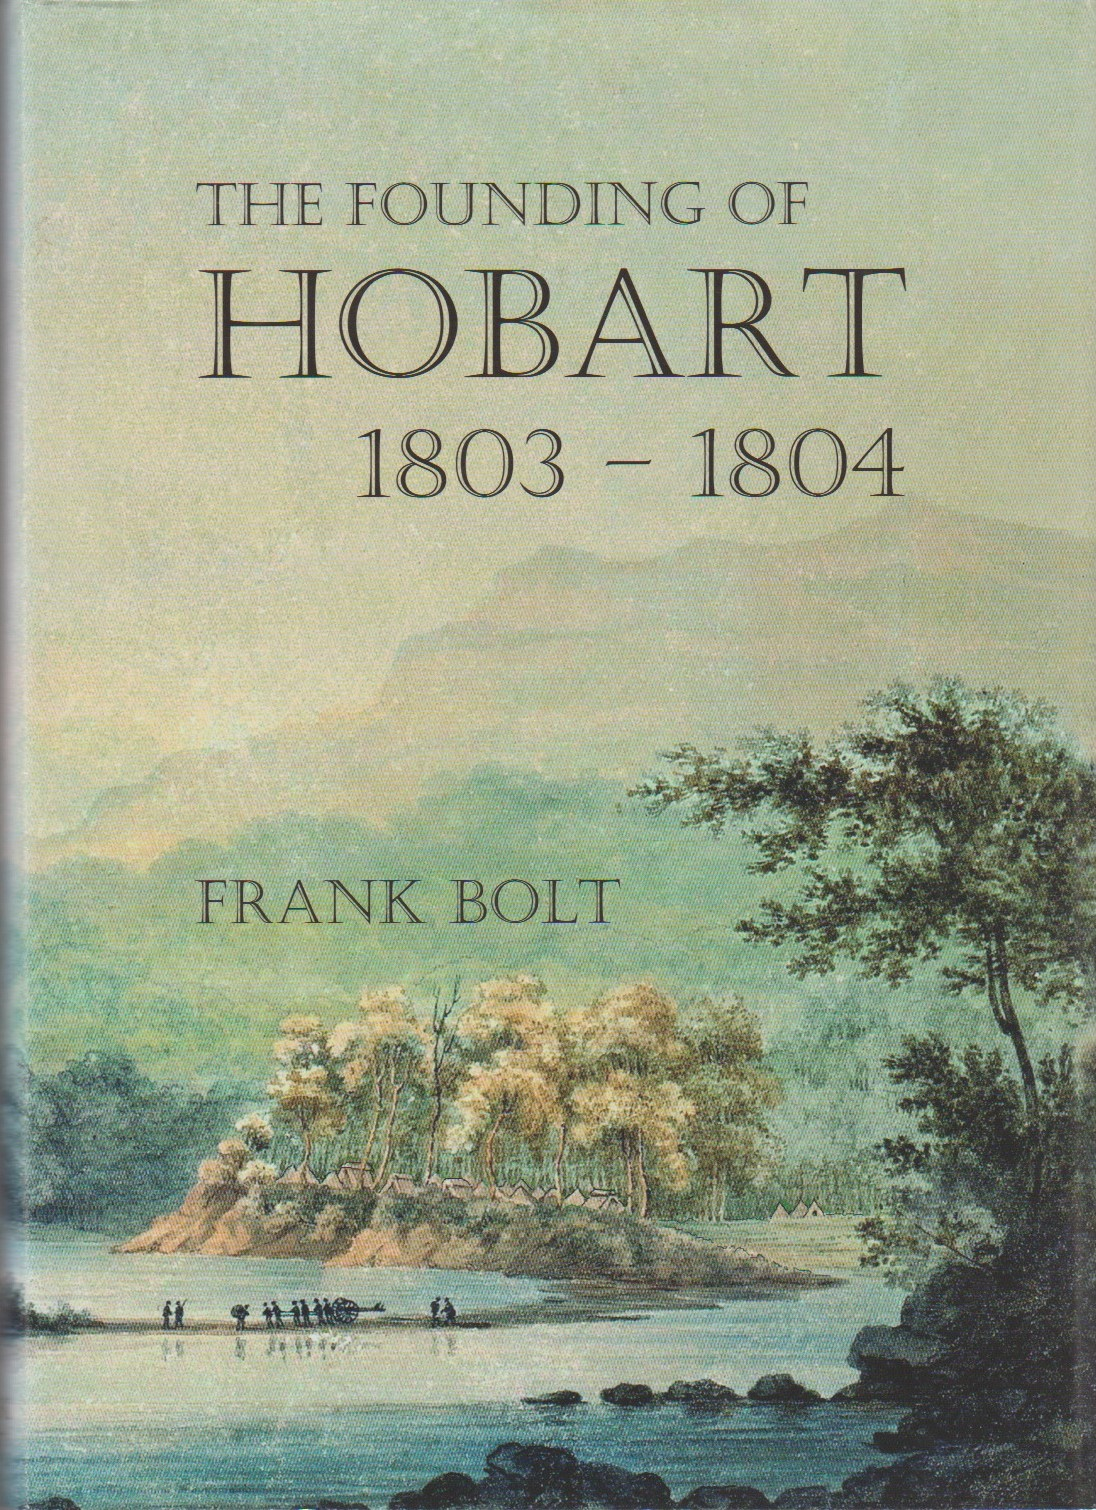 The Founding of Hobart